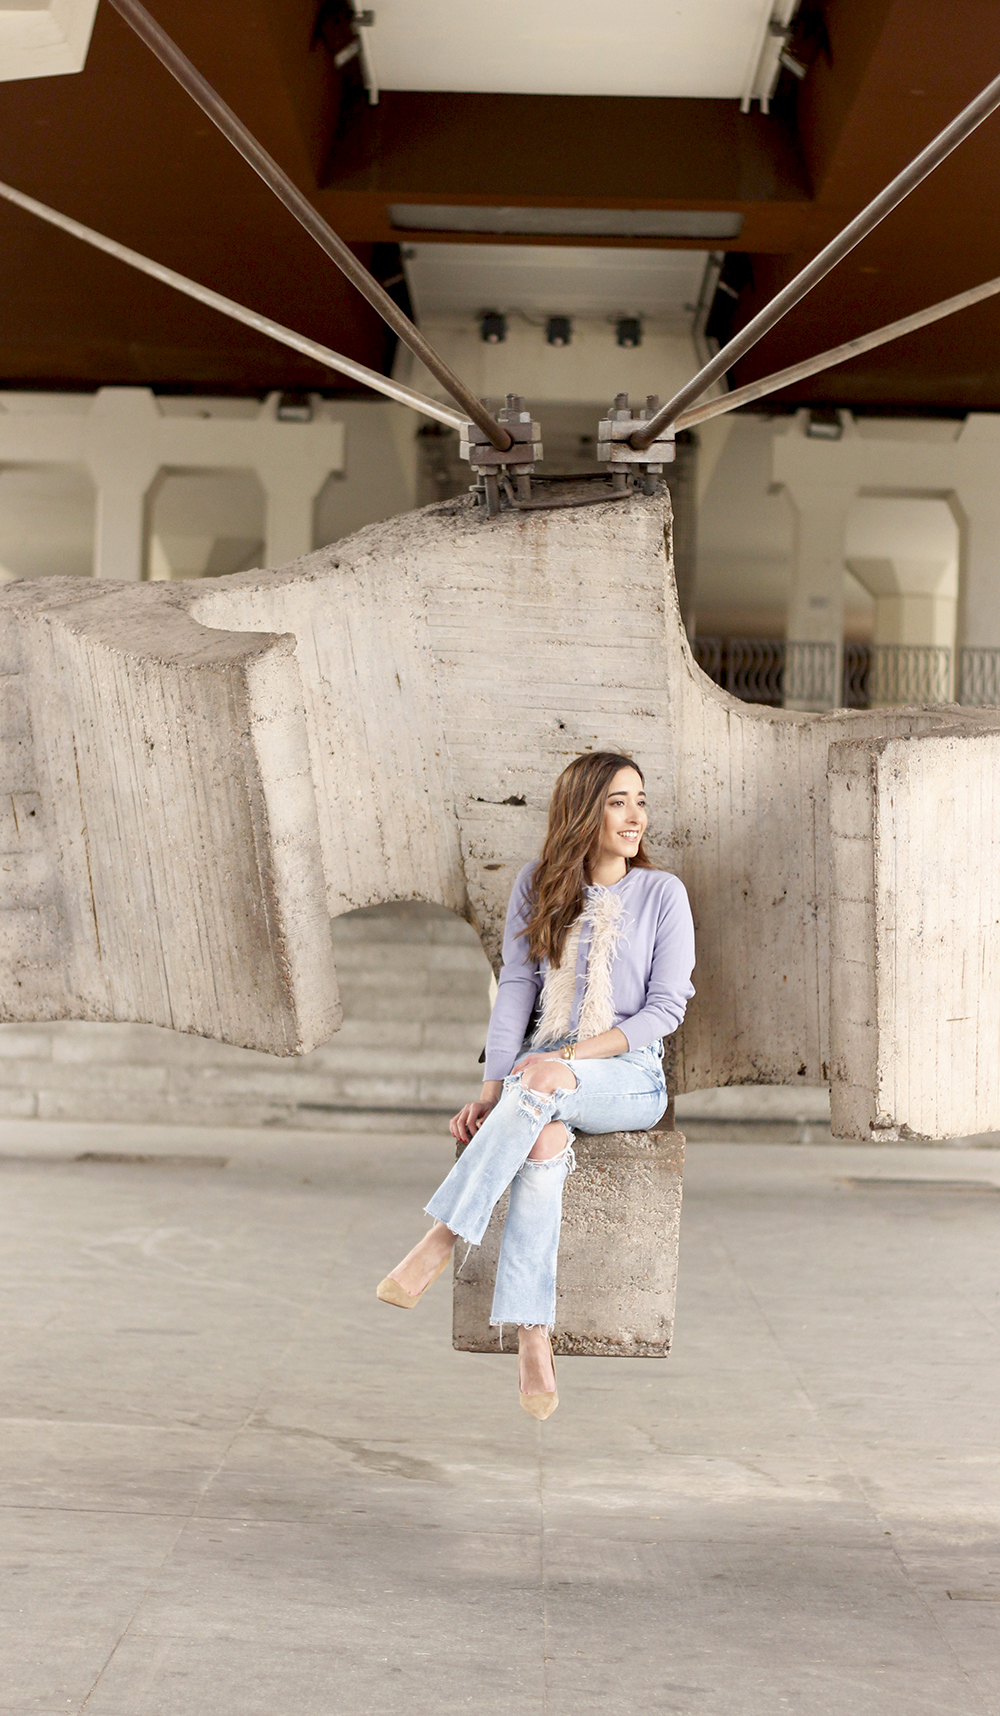 lavender sweater ripped jeans gucci bag nude heels casual street style casual outfit 20197